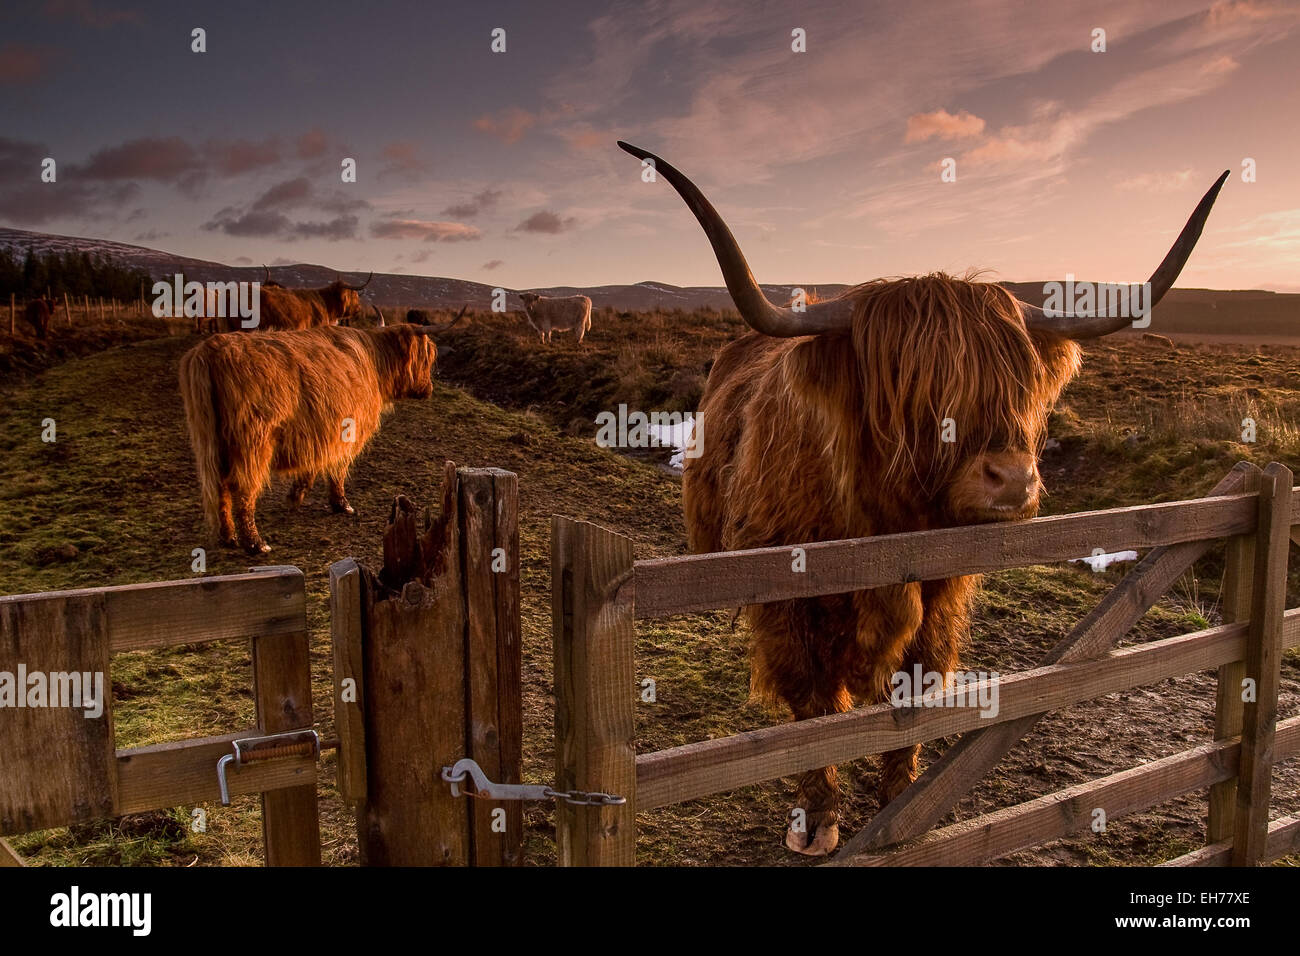 Highland Cow - Stock Image